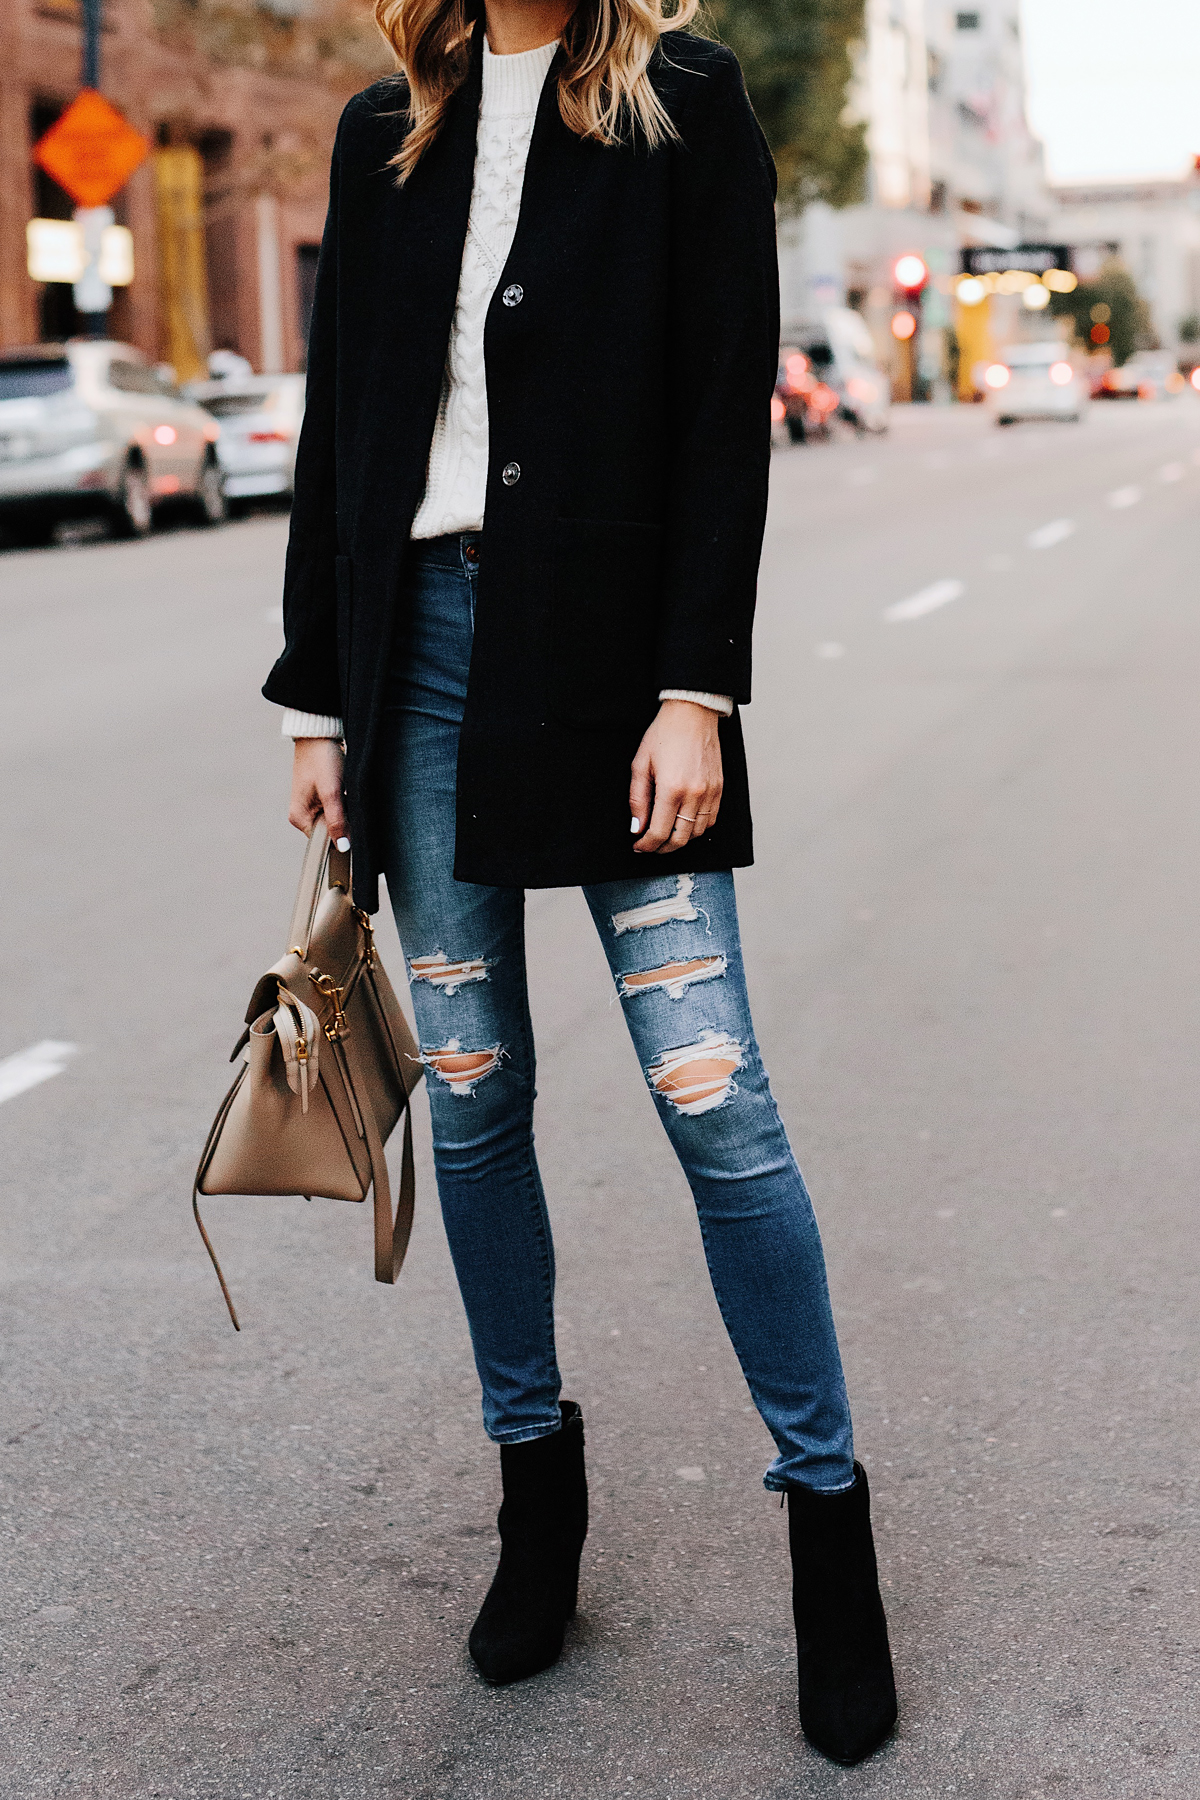 Woman Wearing Abercrombie Black Wool Coat Cable Knit White Sweater Denim Ripped Skinny Jeans Black Booties Outfit Fashion Jackson San Diego Fashion Blogger Street Style